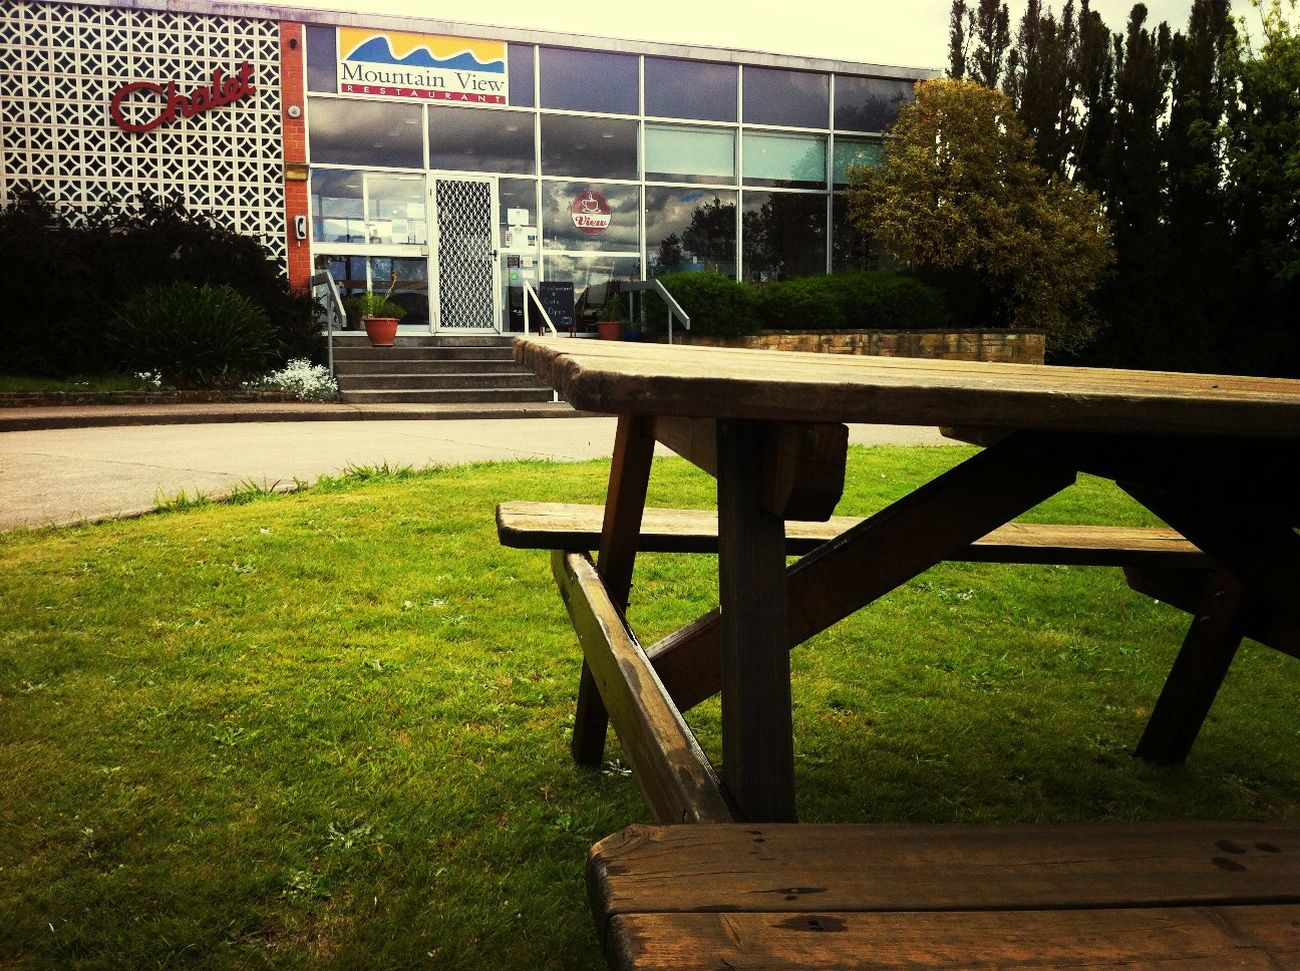 Now you can enjoy having coffee out side:)